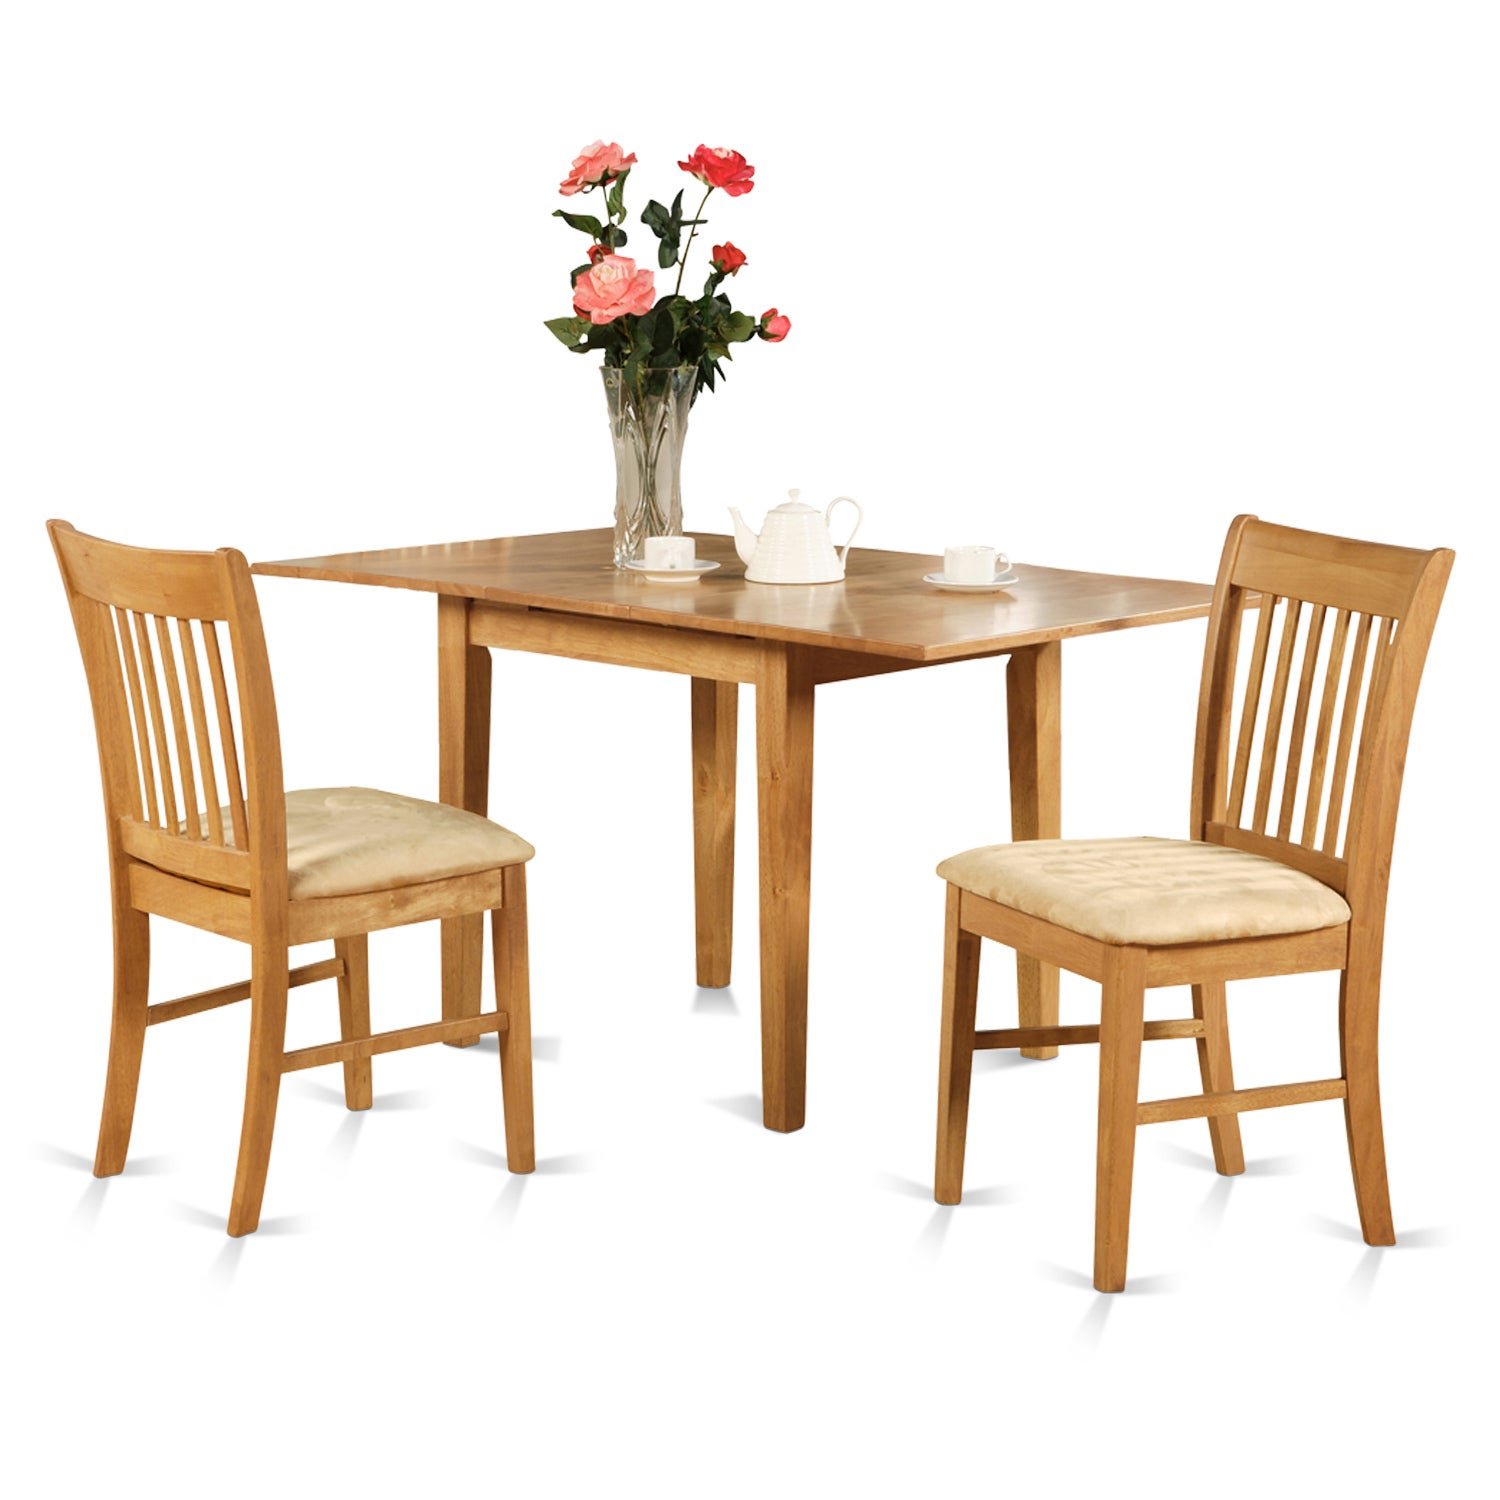 Oak Small Kitchen Table And 2 Kitchen Chairs